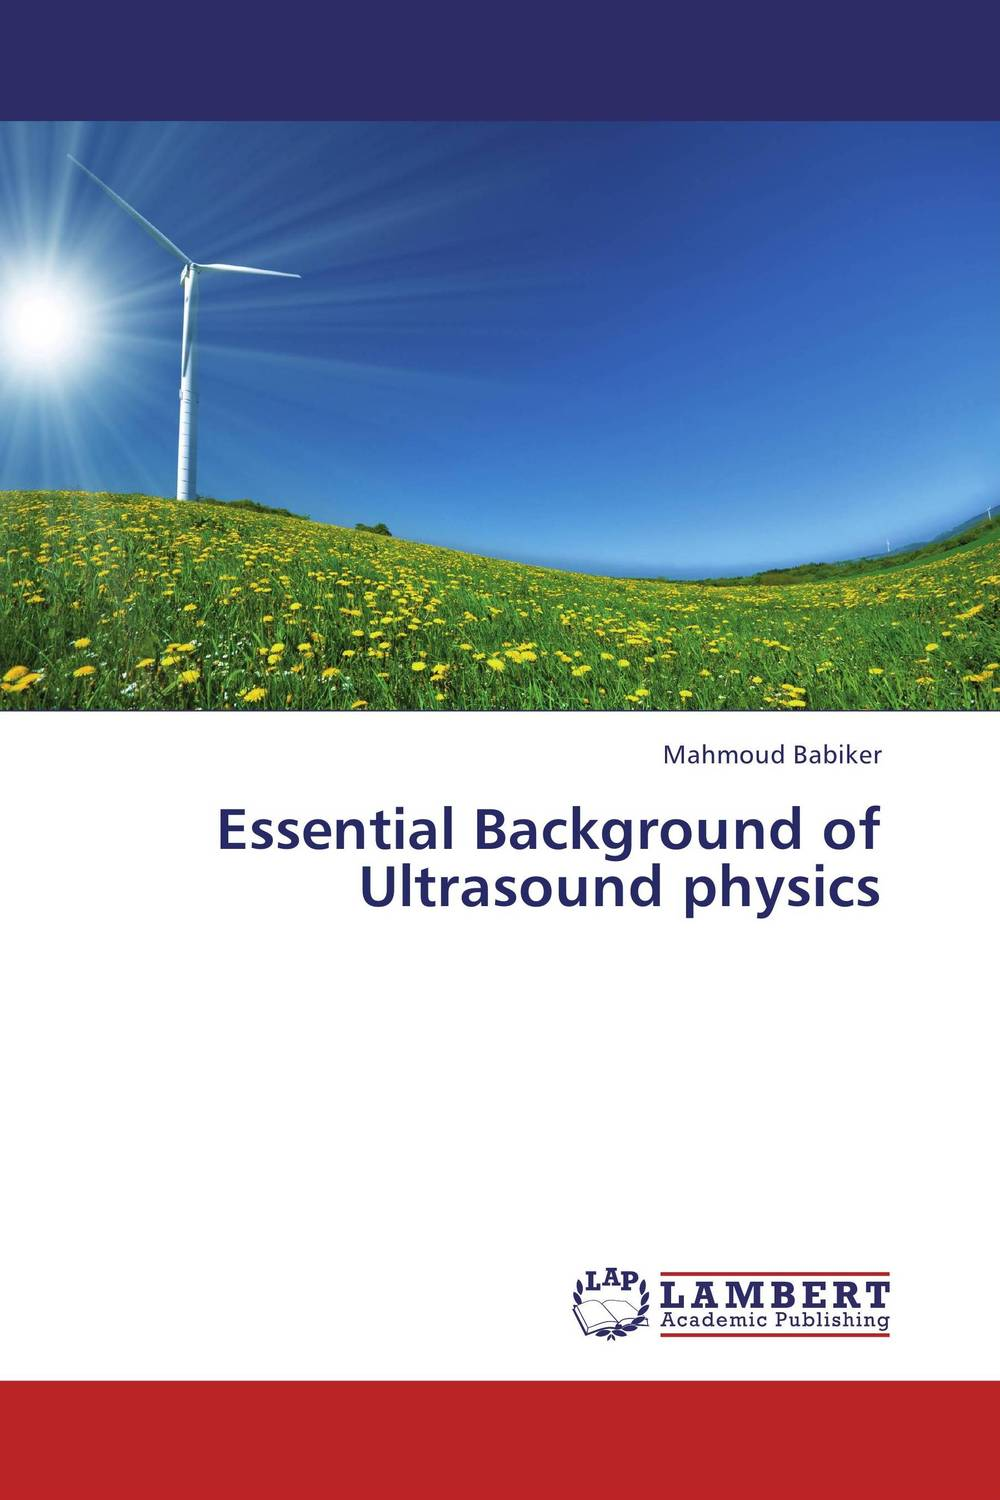 Essential Background of Ultrasound physics role of ultrasound in dentistry